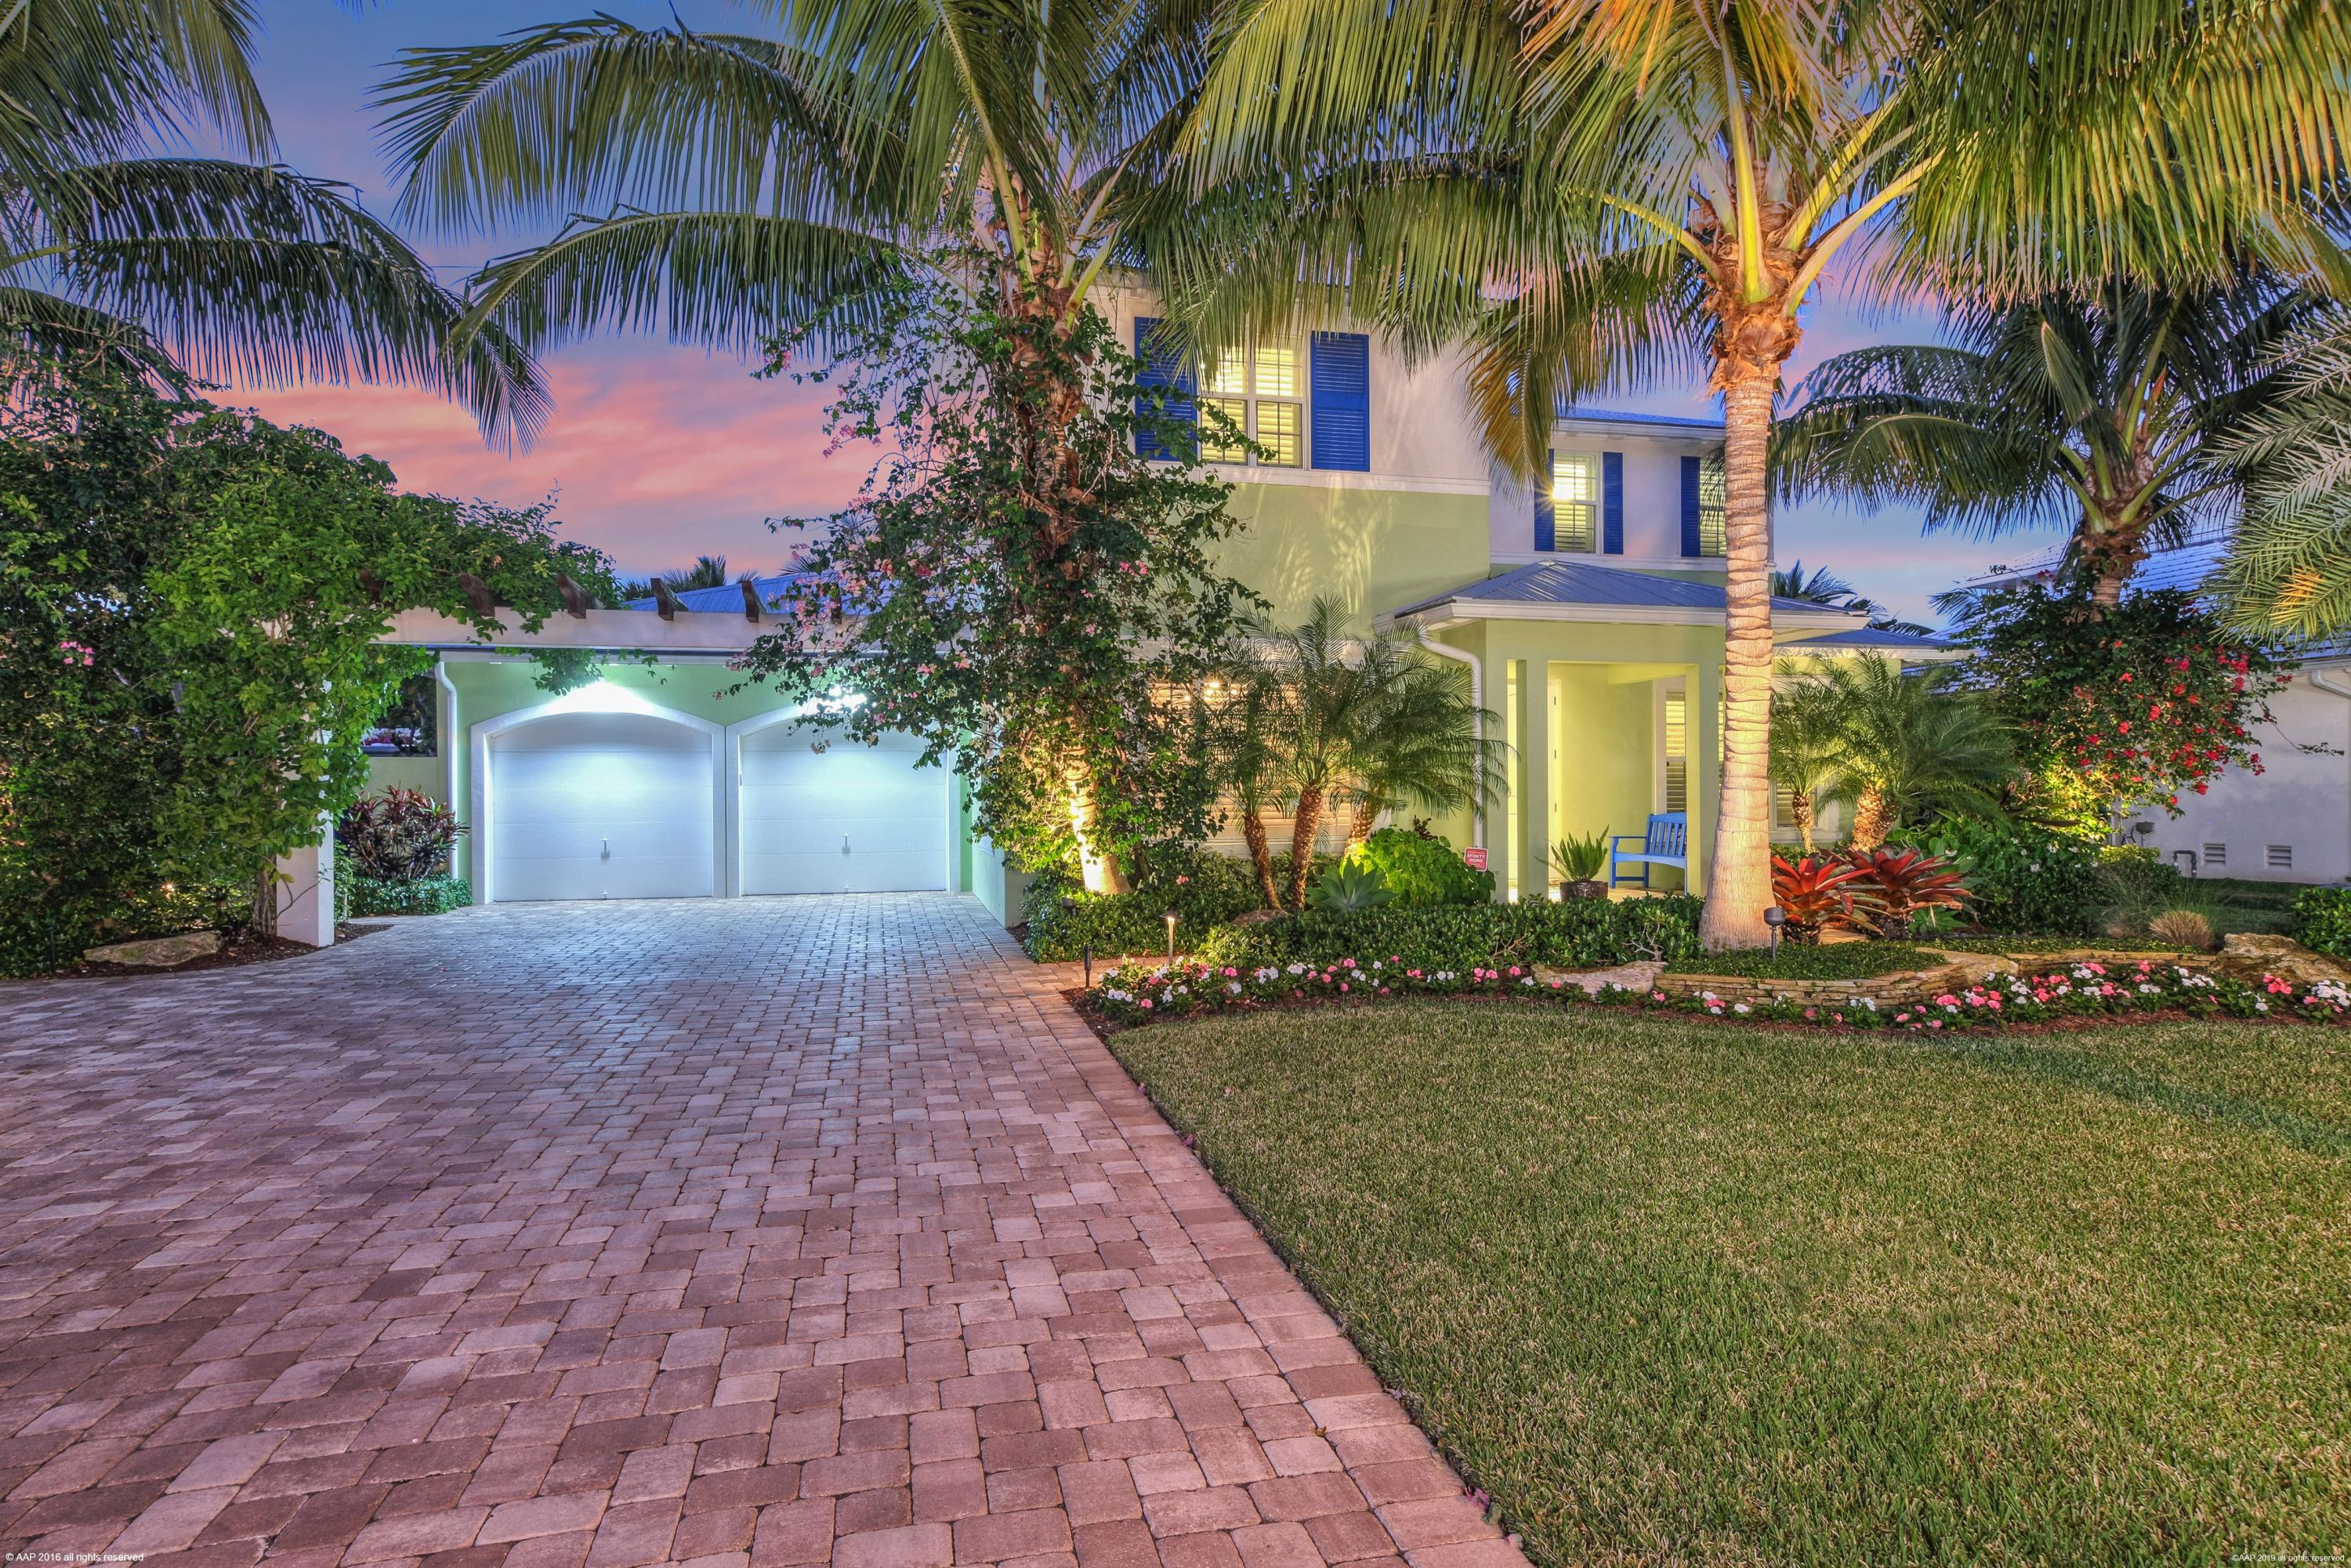 111 6th Street, Delray Beach, Florida 33444, 5 Bedrooms Bedrooms, ,4.1 BathroomsBathrooms,Single Family,For Sale,6th,RX-10501637